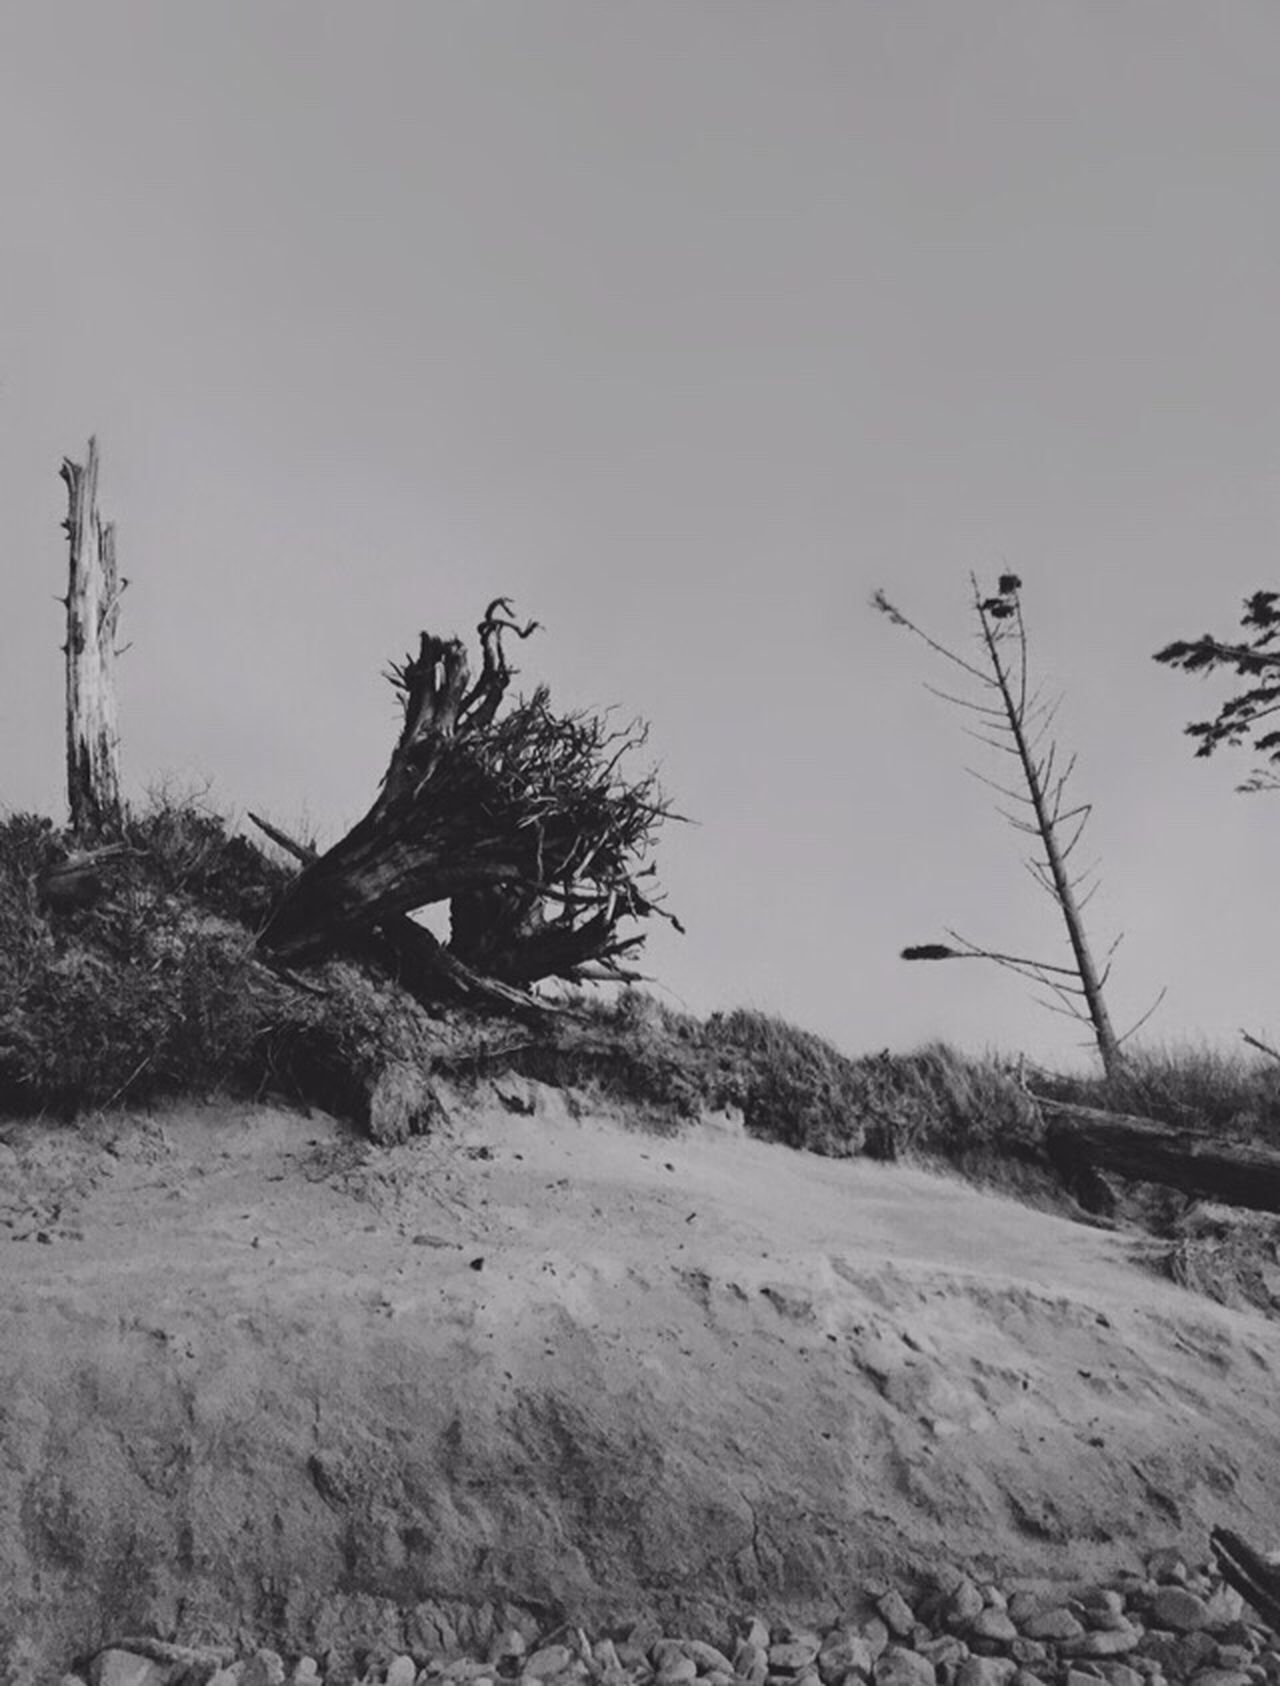 Showing Imperfection Nature Landscape #Nature #photography Scenics Landscape Photography Scenic View Nature Photography Scenic Landscapes Landscape Views Trees Abstract Nature Neat Places Trees And Sky Black And White Beach Oregon Coast